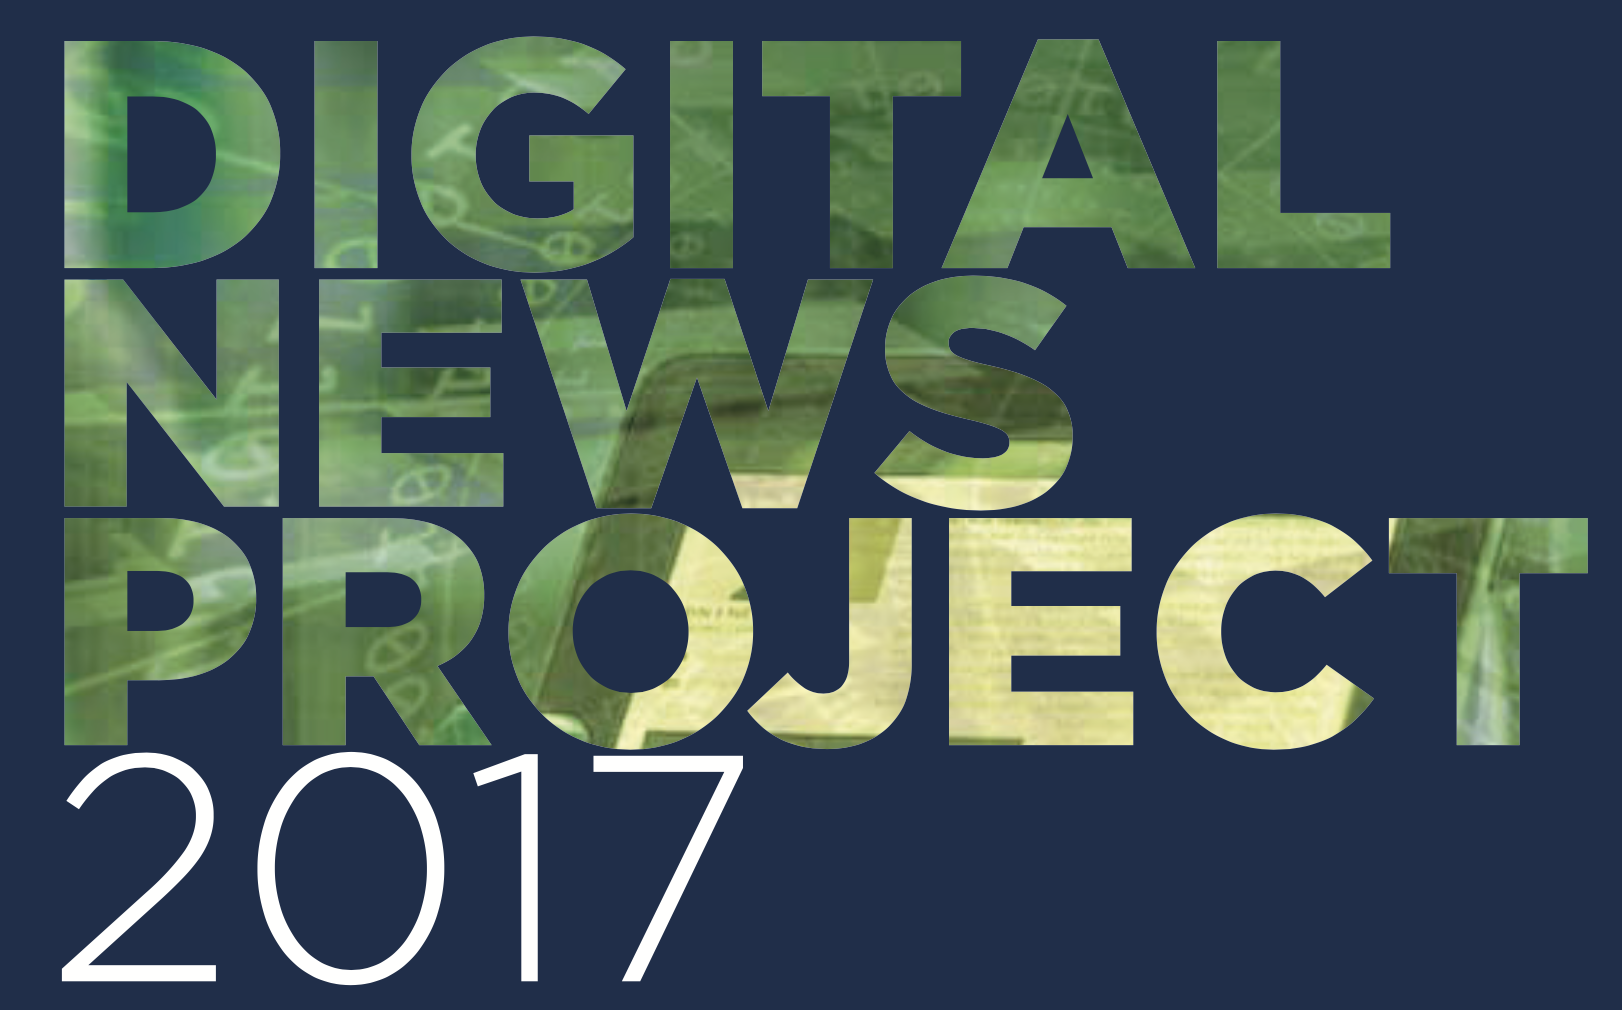 Digital News Project: Trends & Predictions 2017